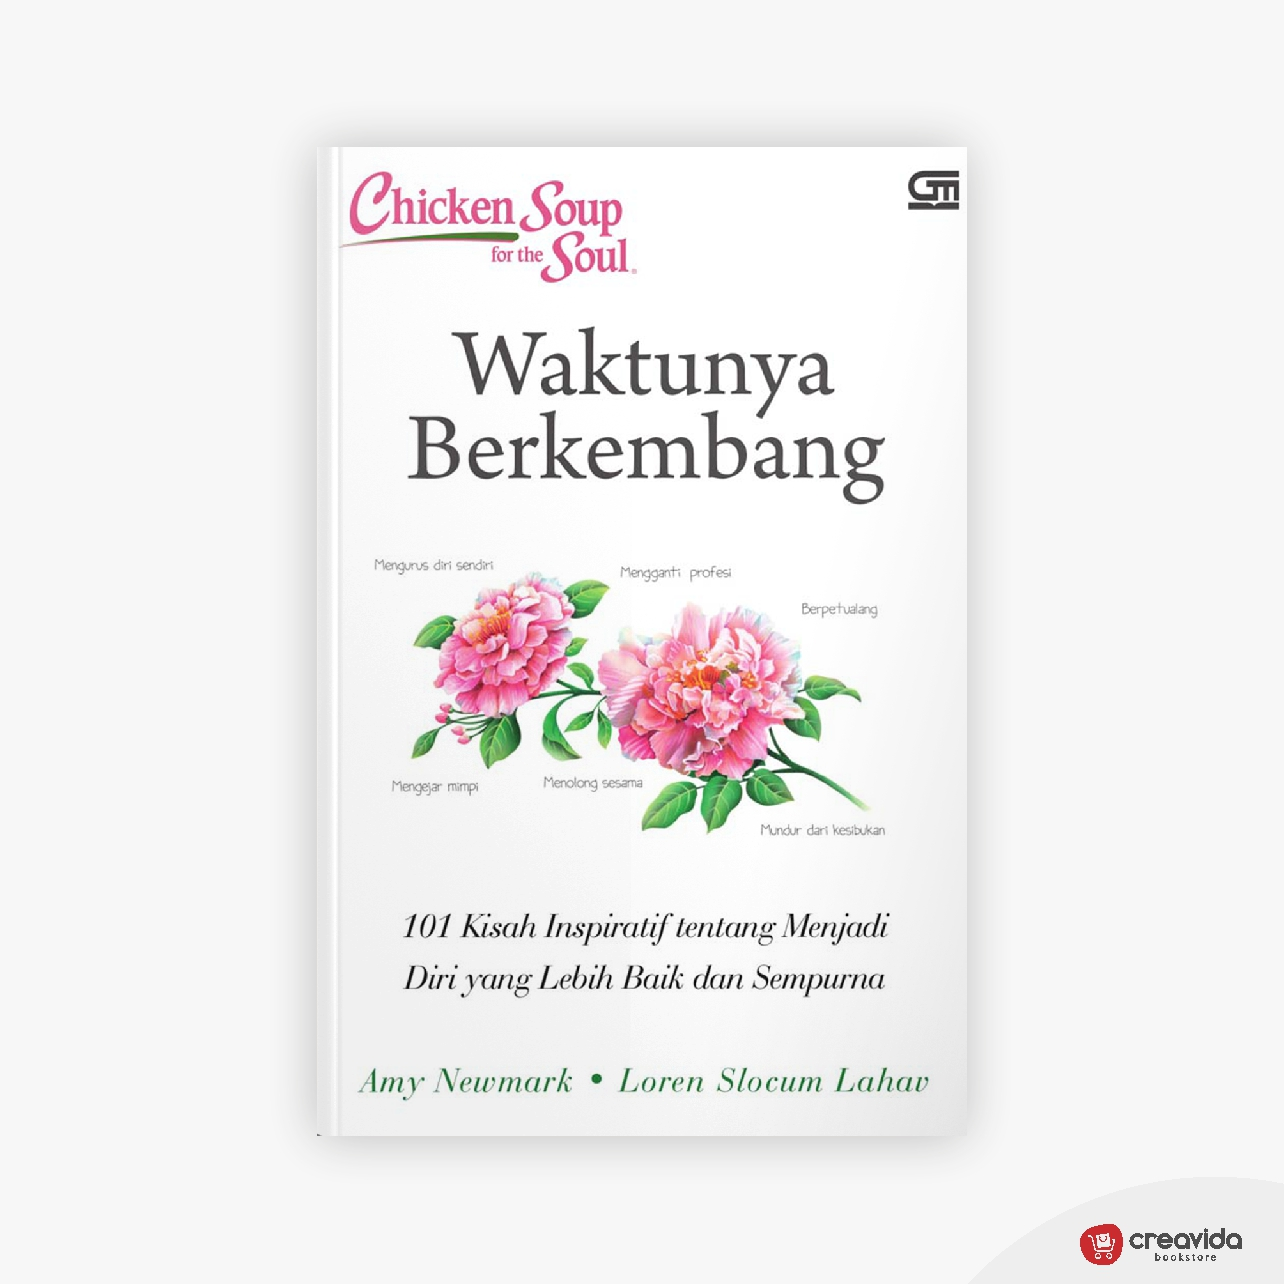 Jual Buku Chicken Soup for the Soul: Waktunya Berkembang